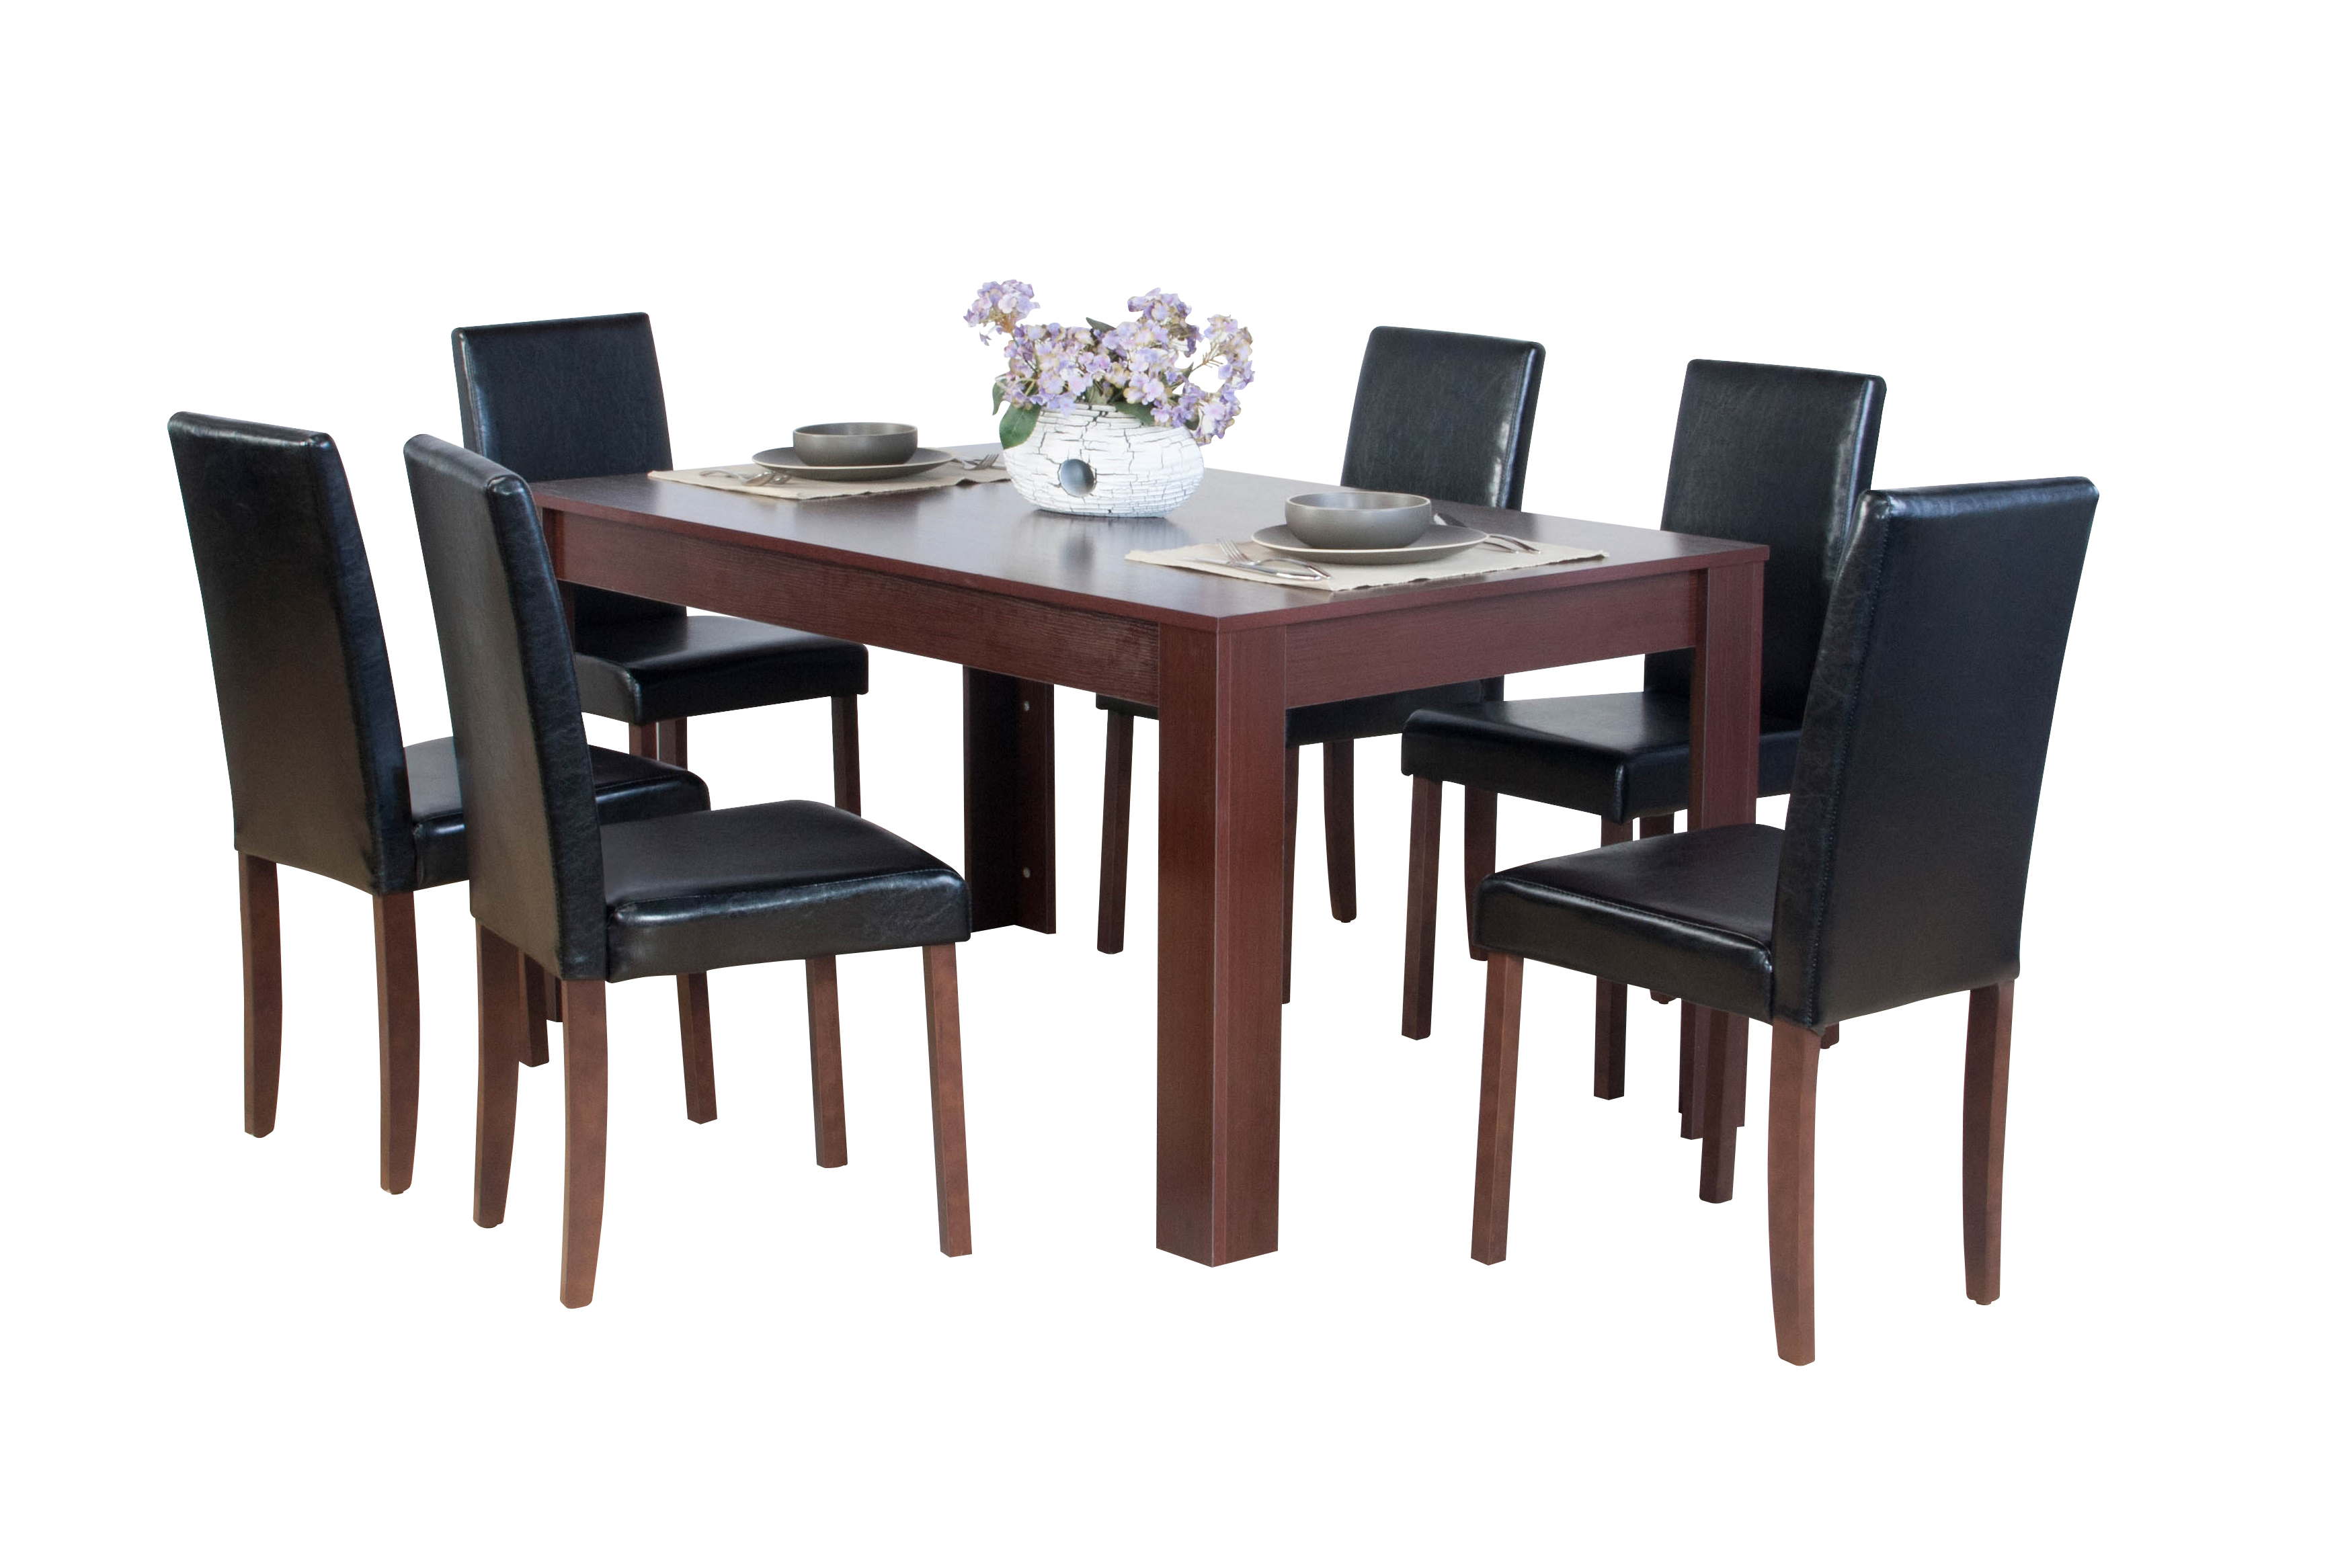 Dover Dark Brown Oak Effect Wooden Dining Table With 4